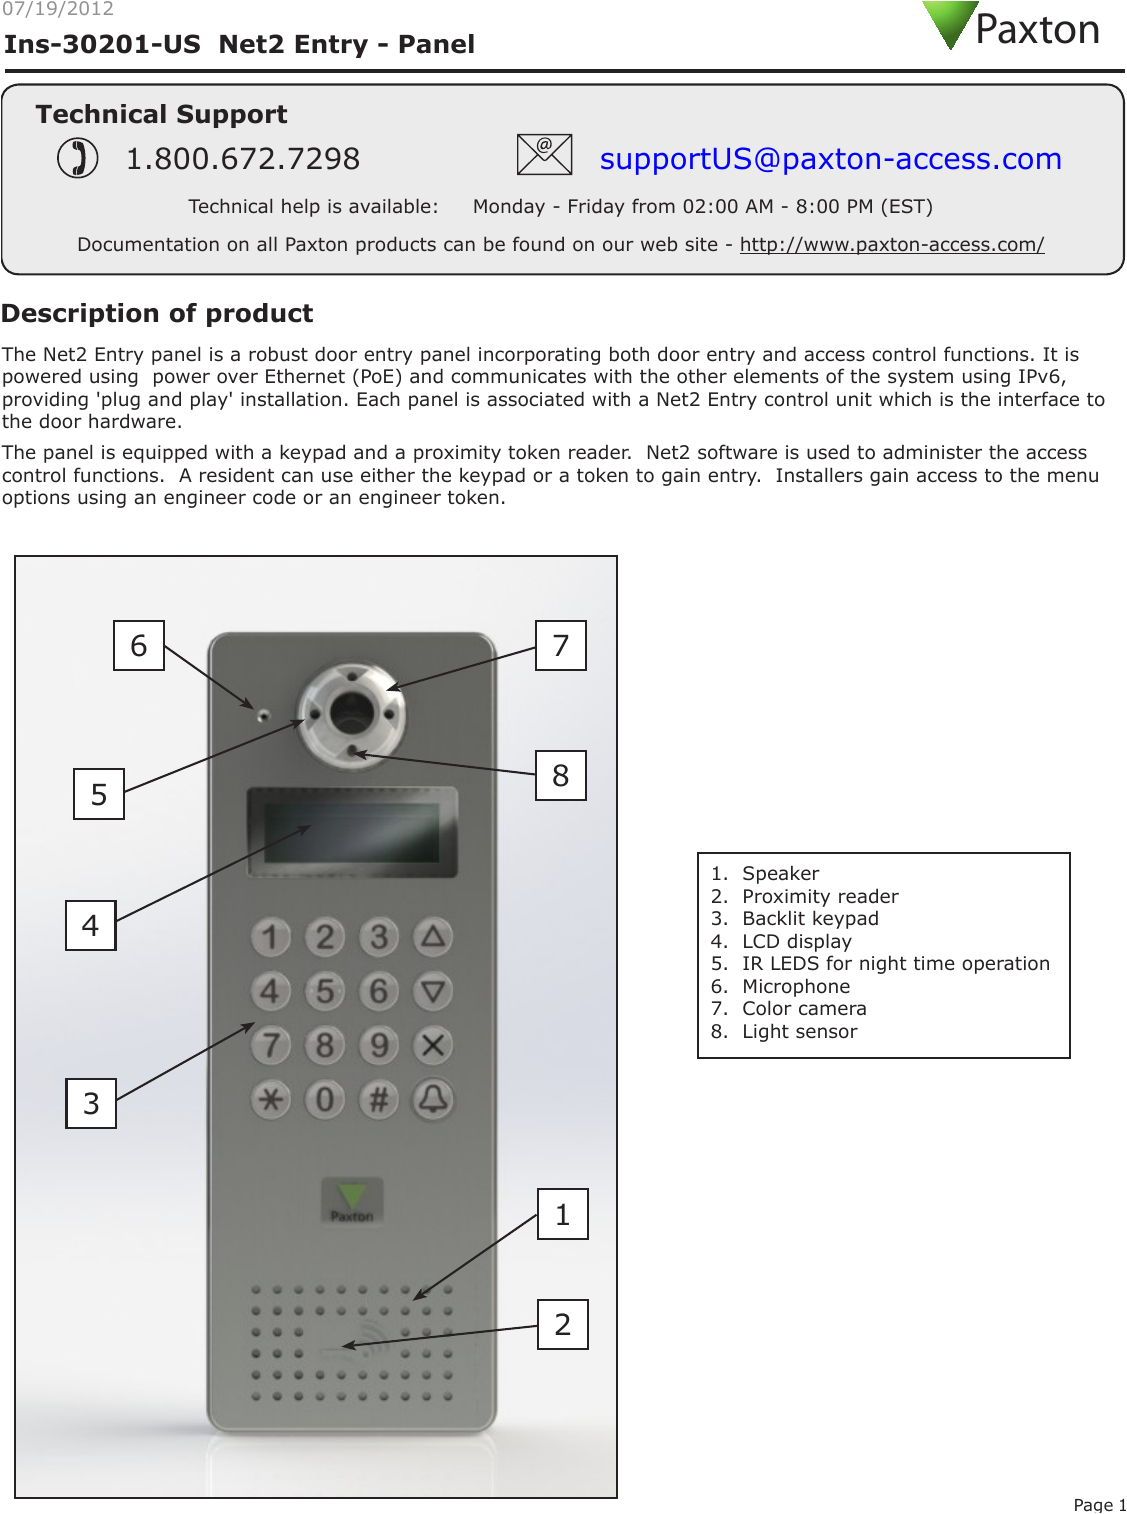 Paxton Switch 2 Wiring Diagram 337837 Net2 Entry Panel User Manual Instruction Net2 Entry